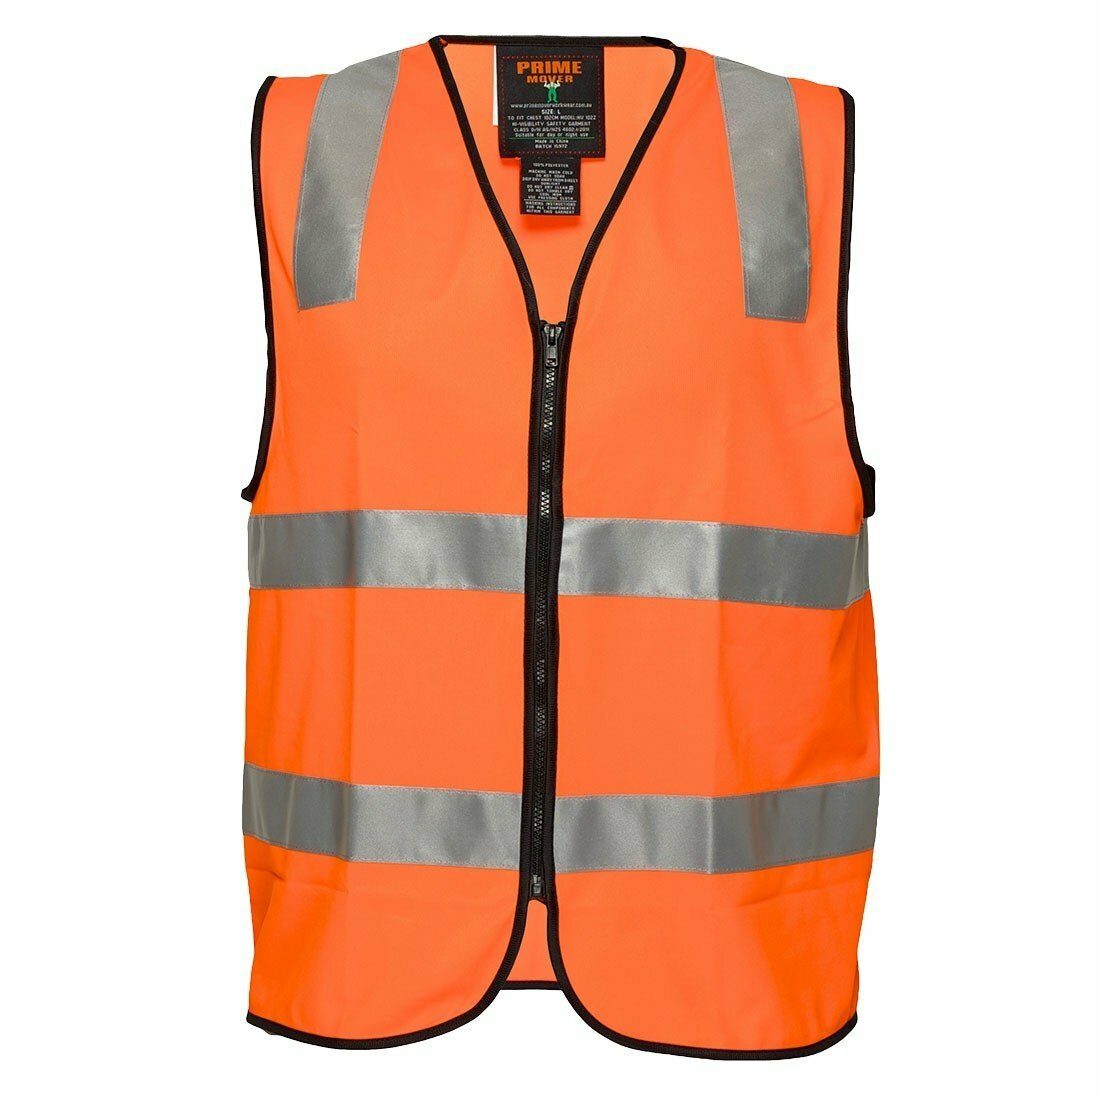 MZ104 Day/Night Safety Vest with Tape